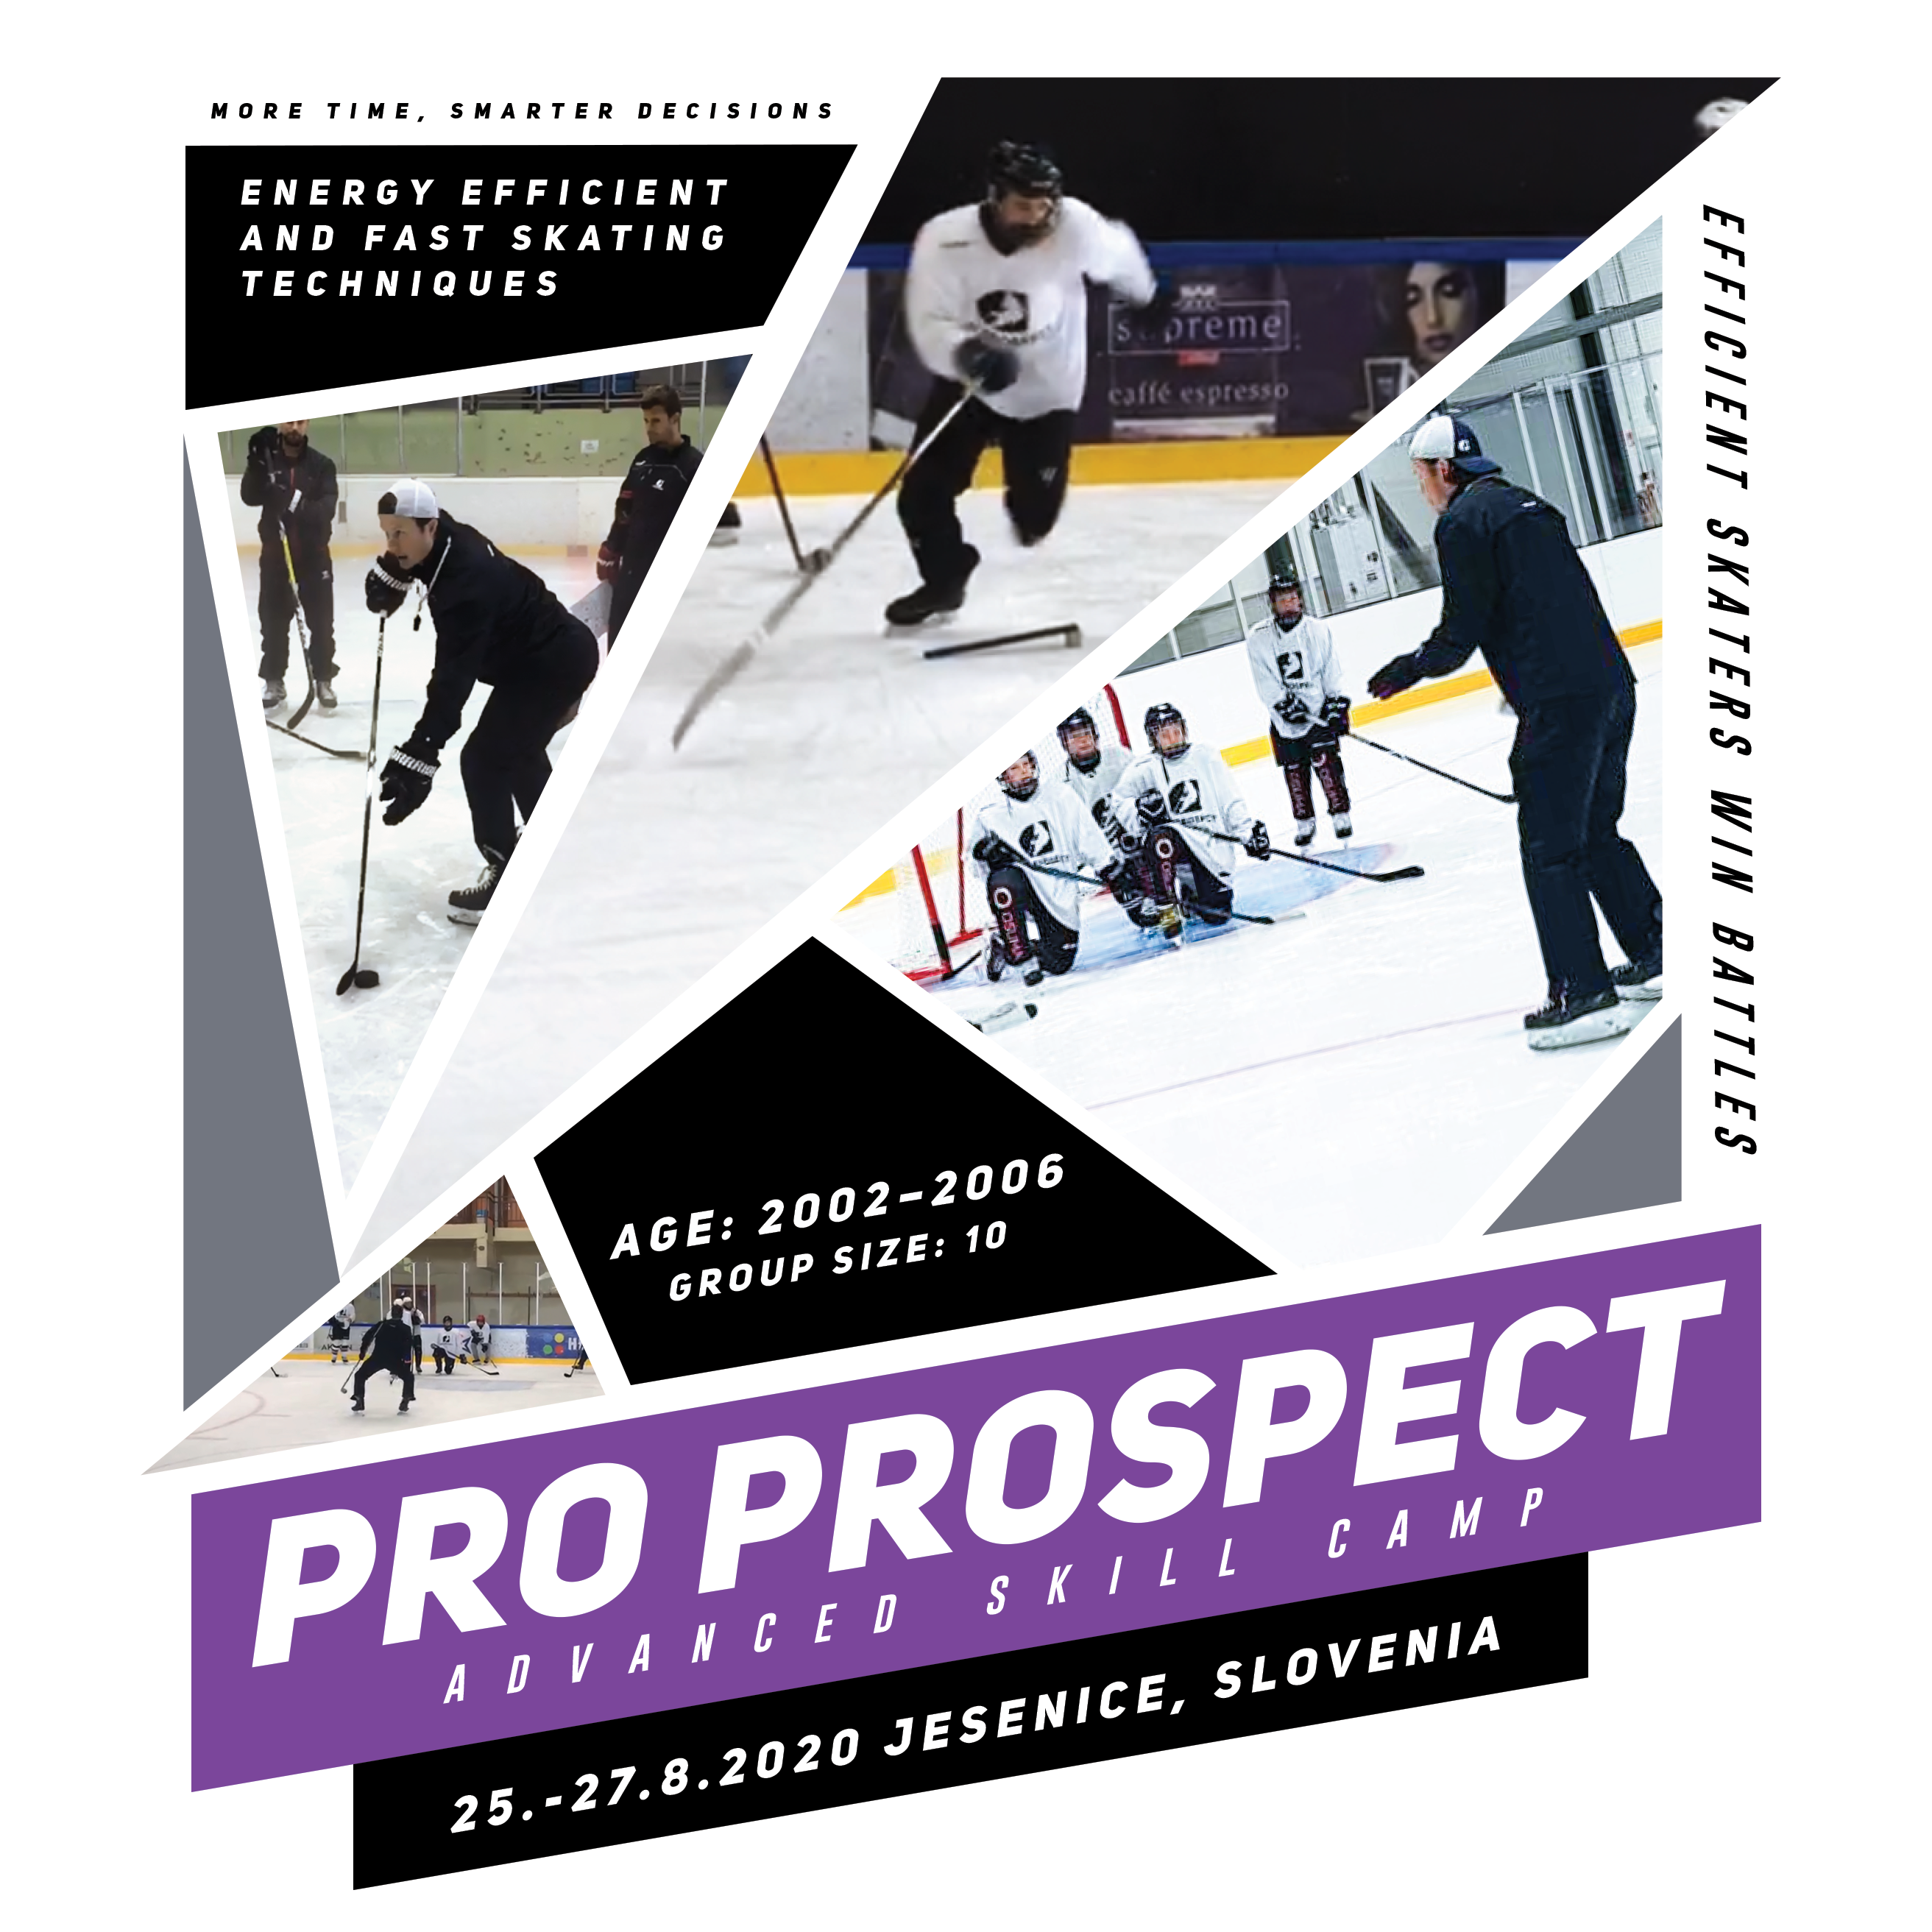 Ice Hockey Skating Skill Camp for young players in Jesenice, Slovenia